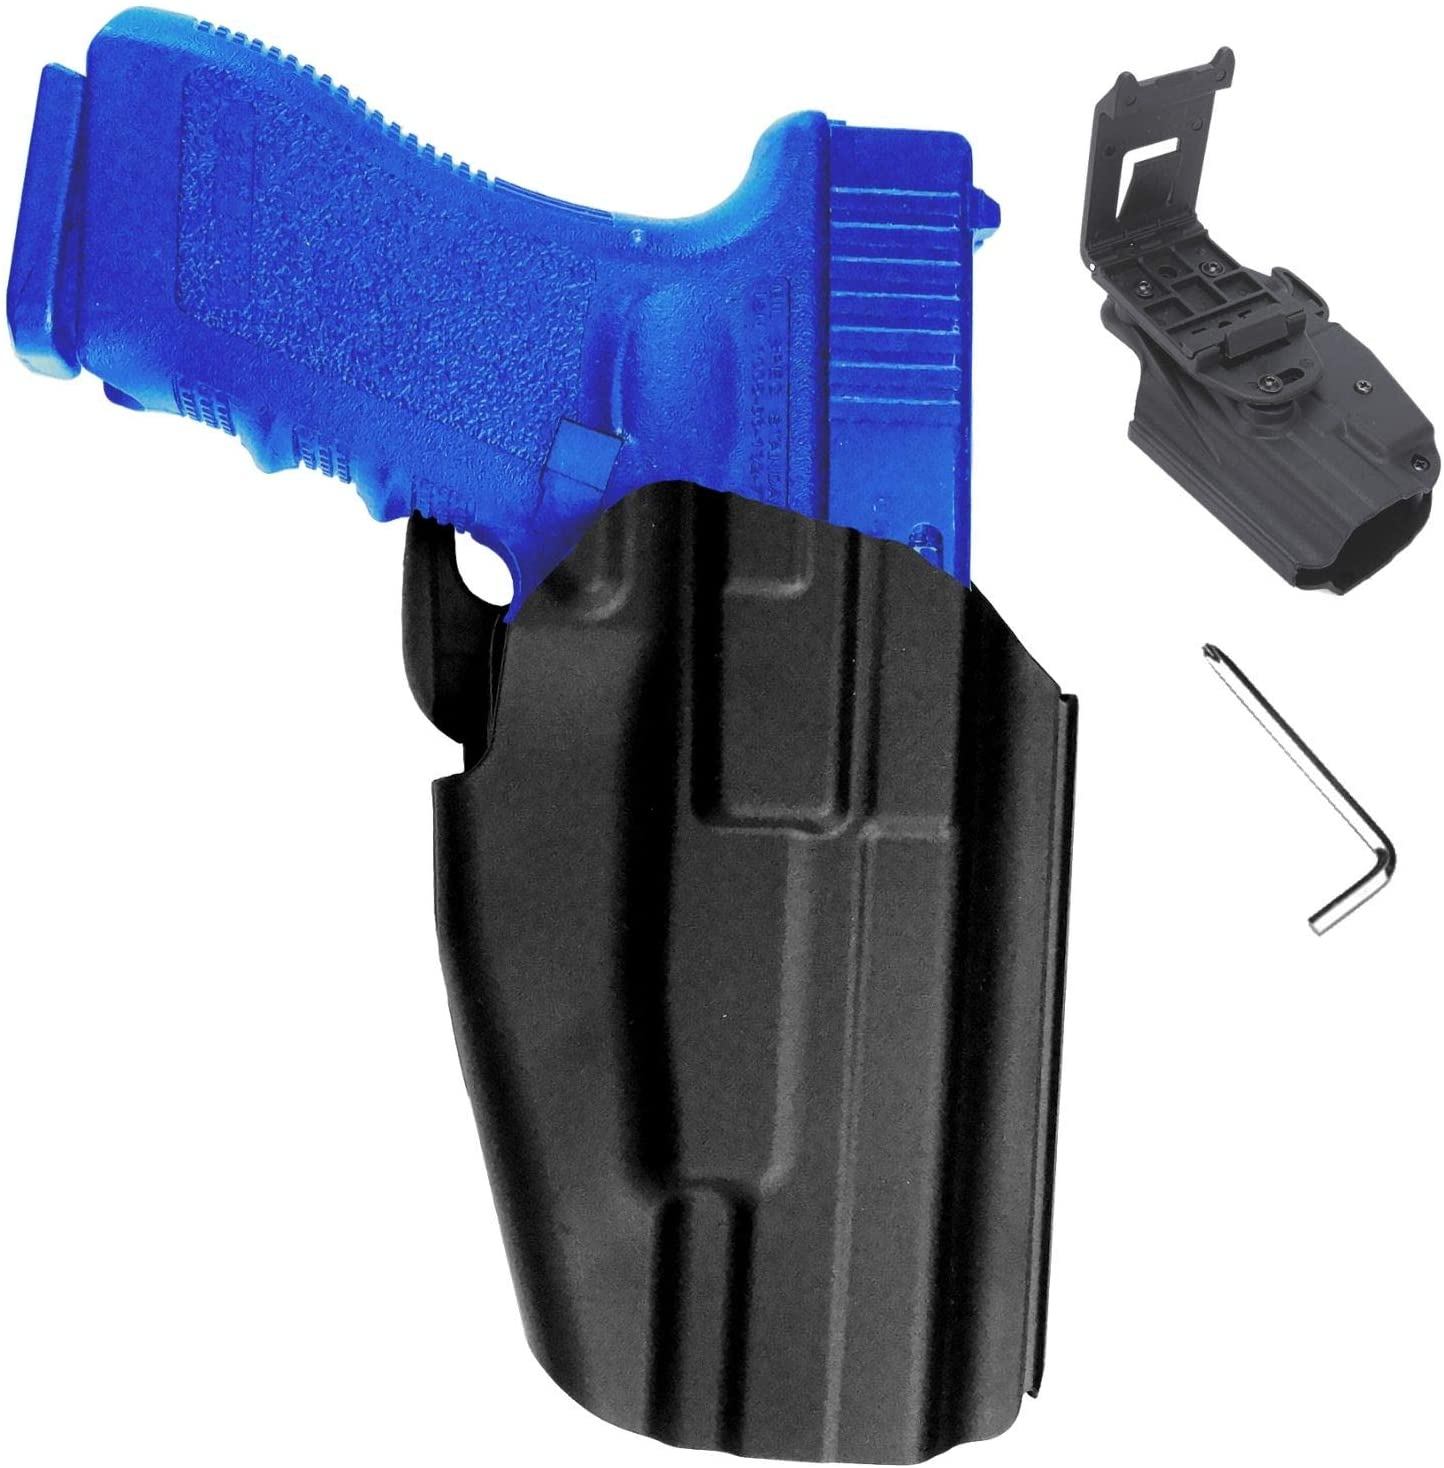 NH Gun Holster OWB Pistol Paddle Tactical Active Waistband Belt Loop Quickdraw CQC Concealment for Glock, S&W M&P, H&K, Beretta & Sig Sauer